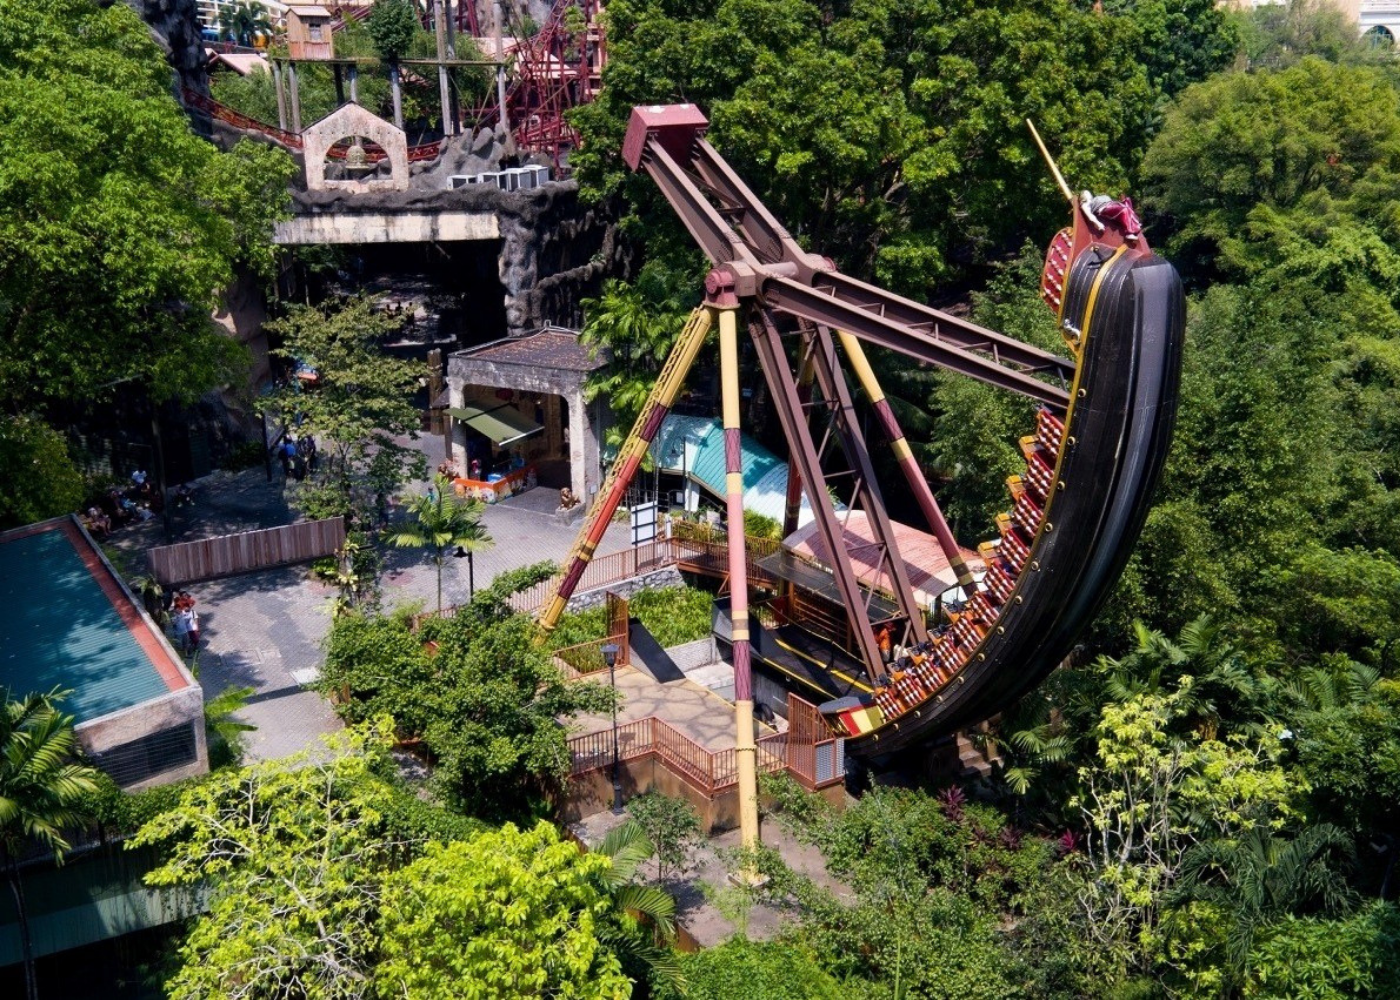 Theme parks in Southeast Asia for adrenaline junkies | Sunway Lagoon